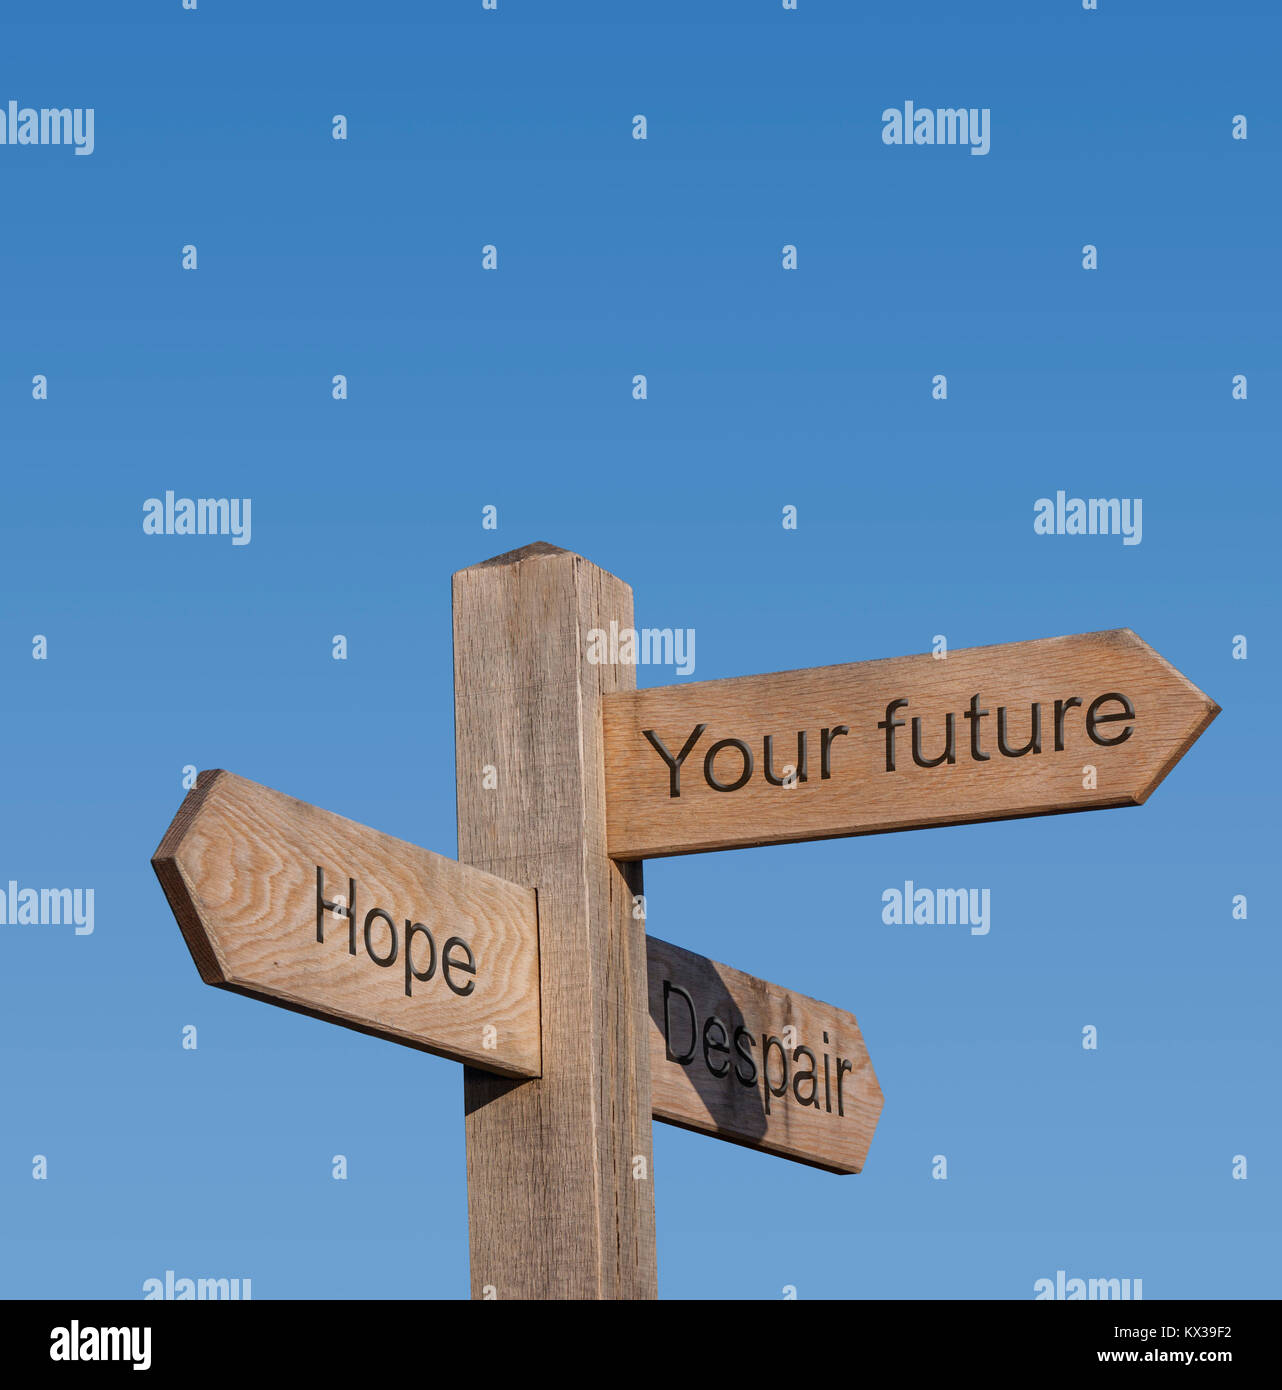 Signpost directions showing hope,despair,your futire. - Stock Image